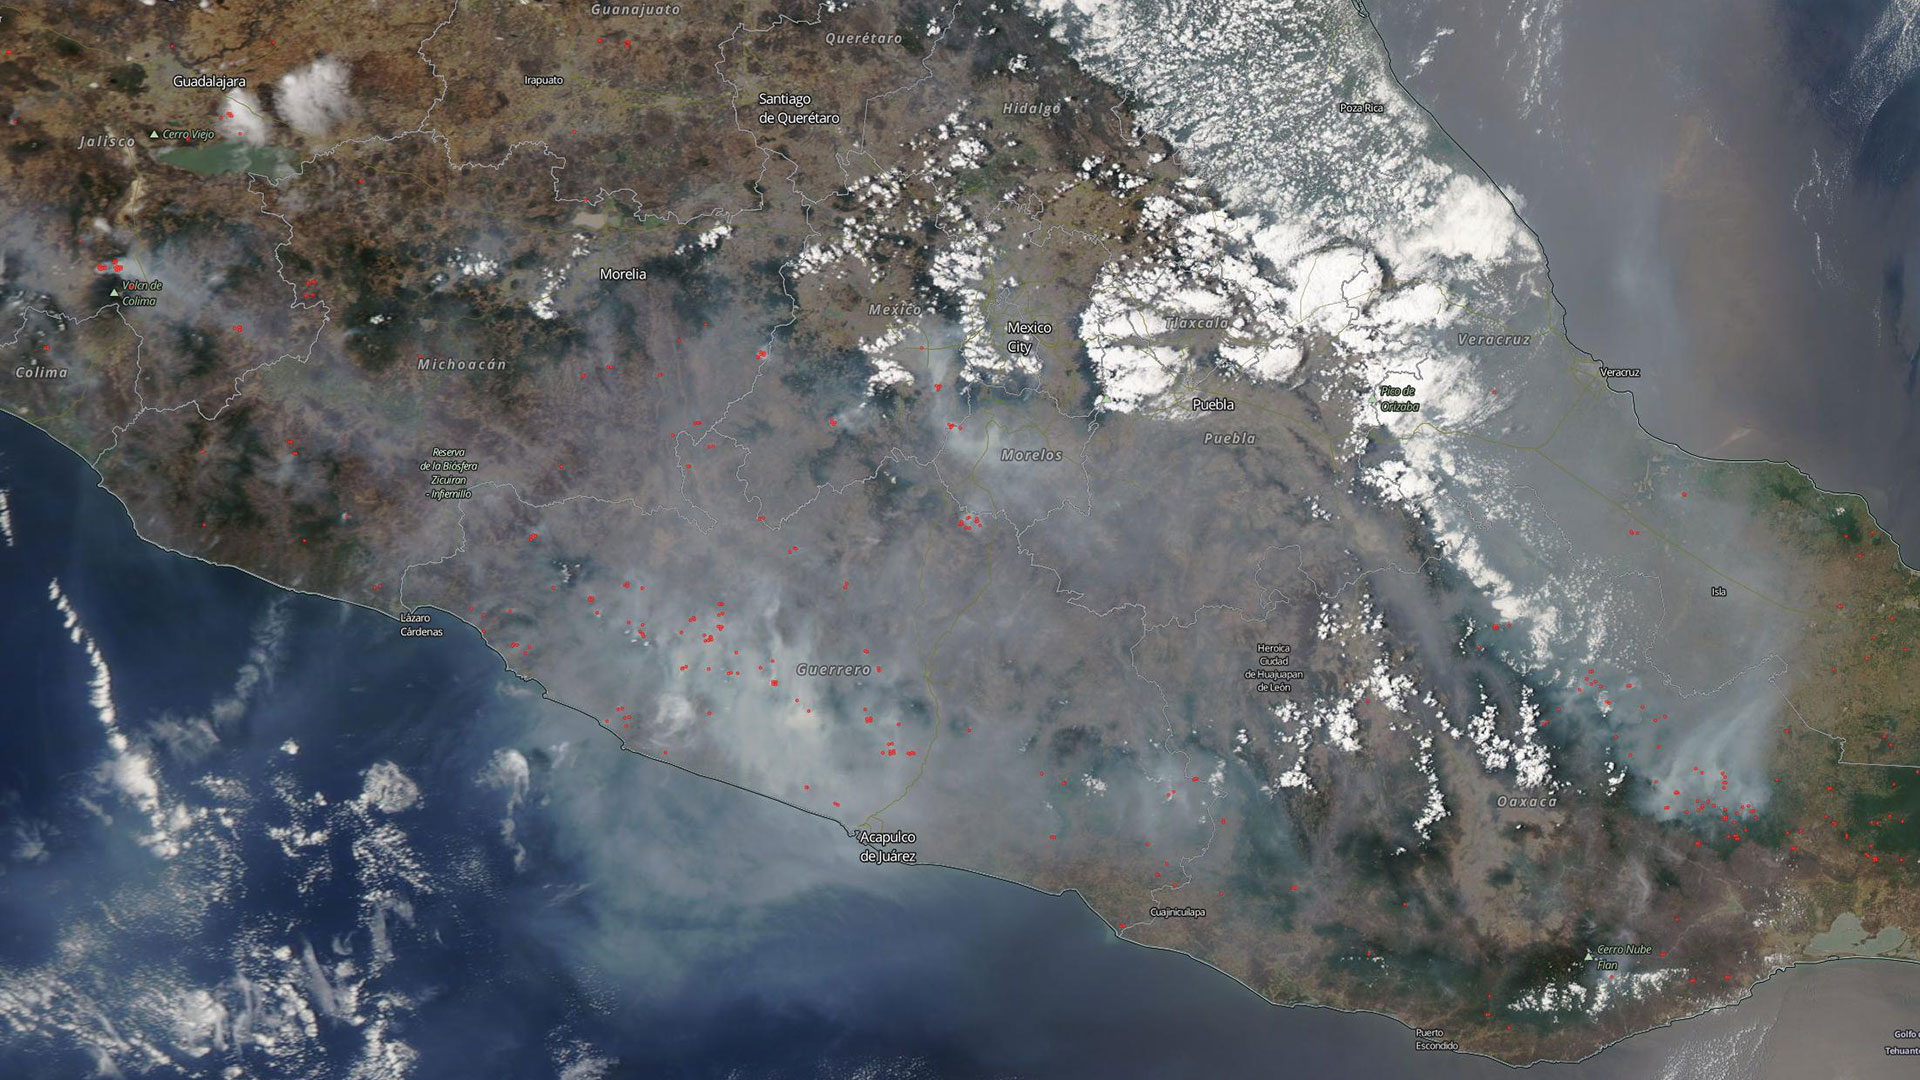 NASA Worldview snapshot over Mexico on May 12, 2019, red dots indicating active fires.